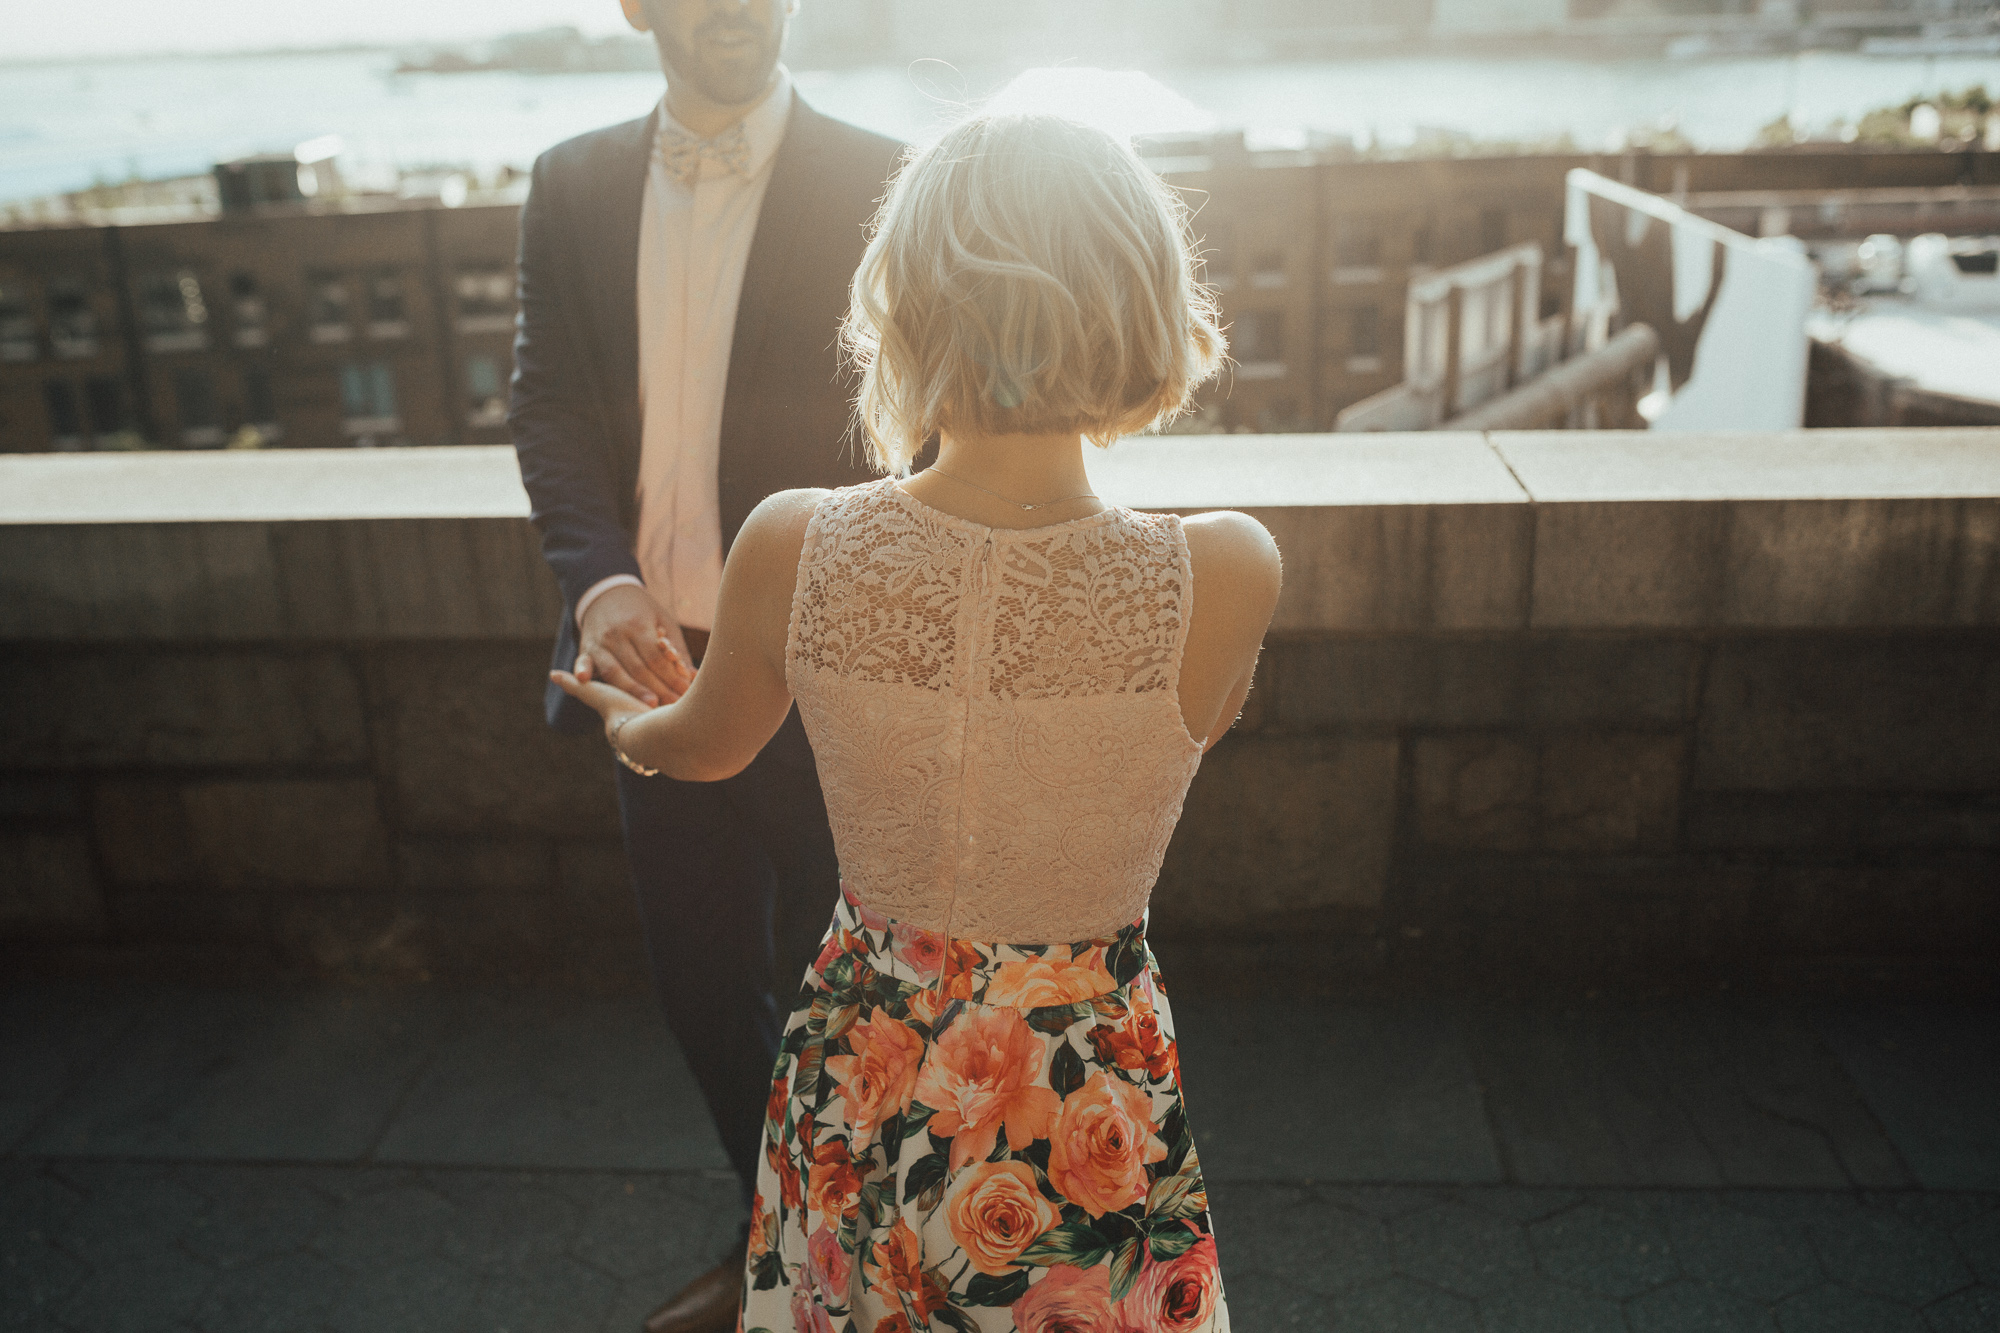 brooklyn_nyc_engagement_photography-33-of-83.jpg